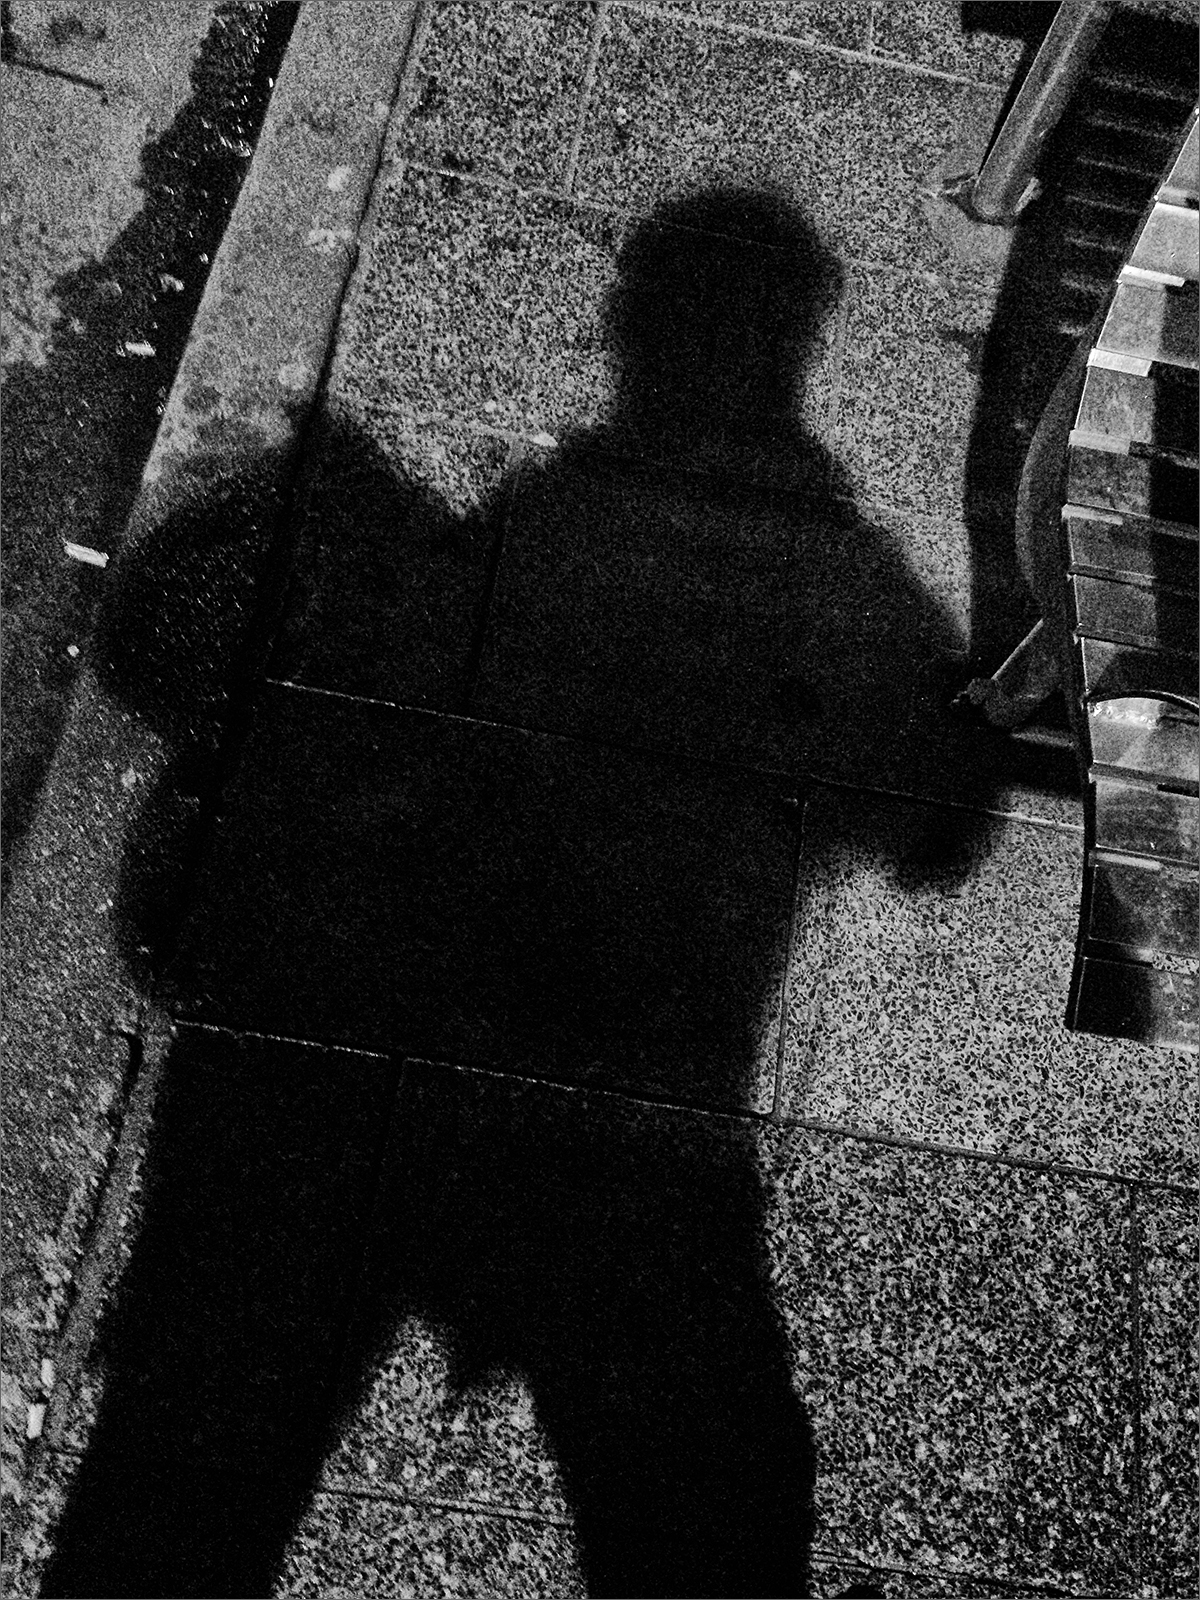 Shadow on pavement in black and white